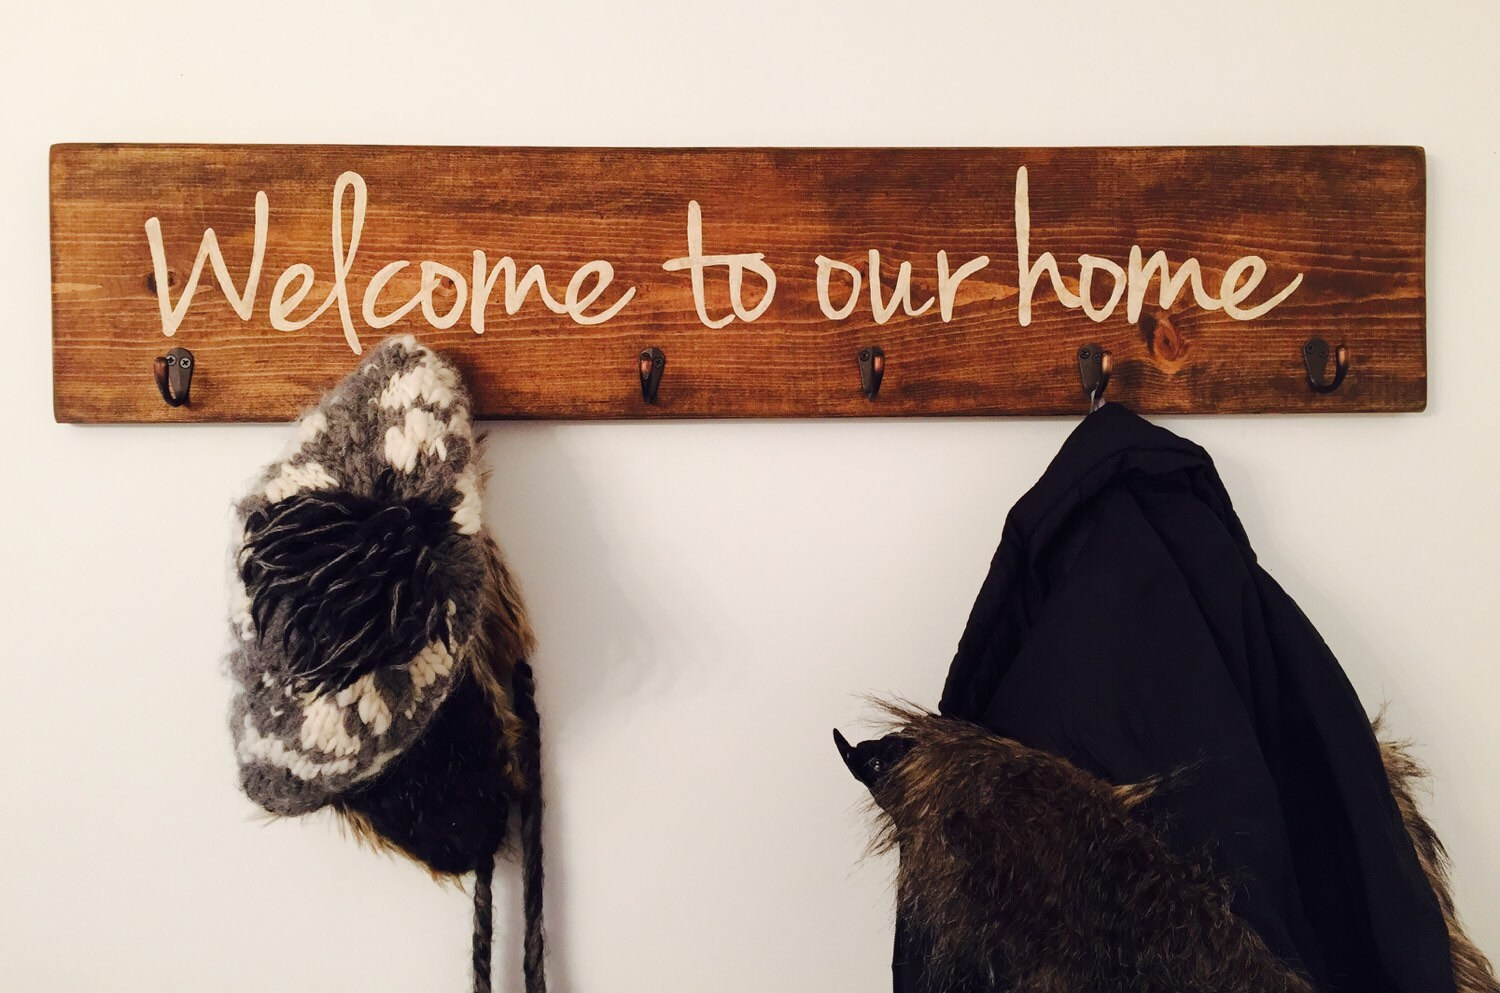 welcome to our home coat rack rustic wood entryway storage, Wohnzimmer dekoo